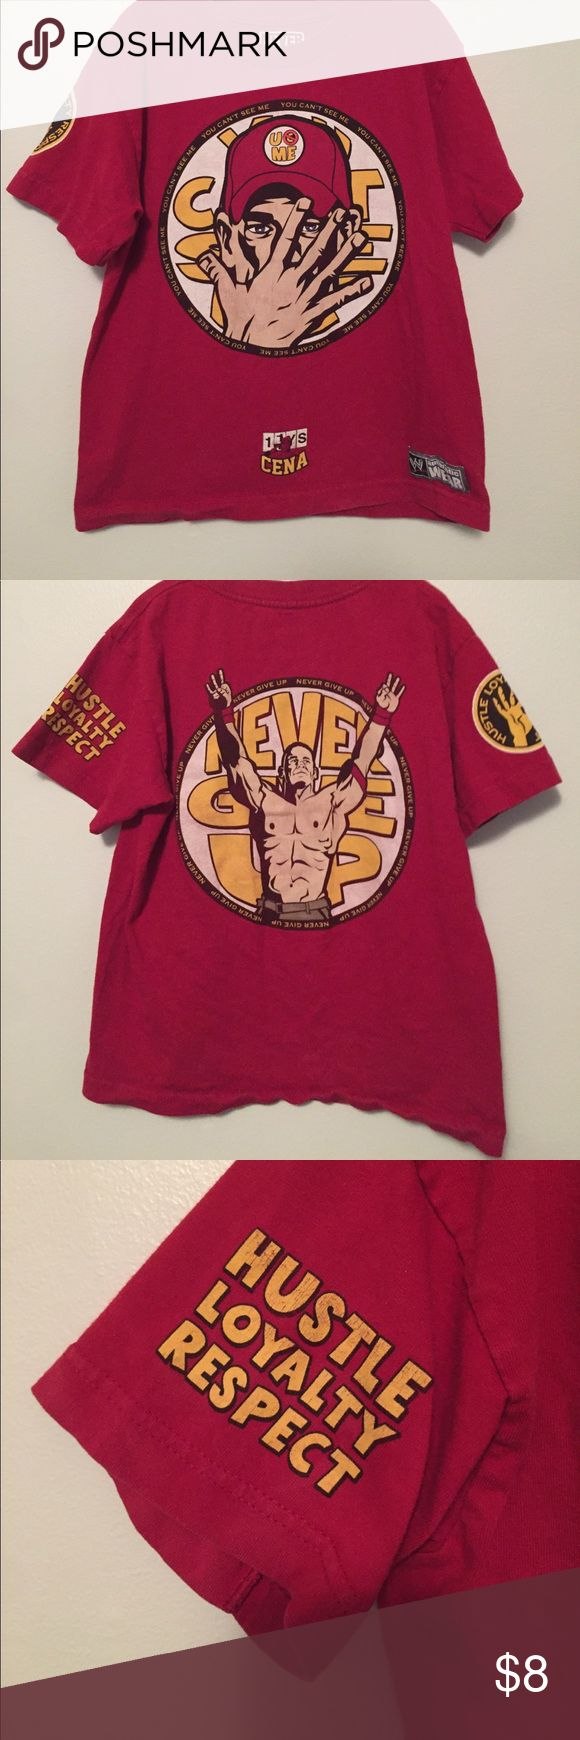 John Cena t-shirt This shirt is in good, used condition. See photos for signs of wear. A perfect shirt for any Cena fan! Tag says Large. My best guess for fit is 10/12. John Cena Shirts & Tops Tees - Short Sleeve